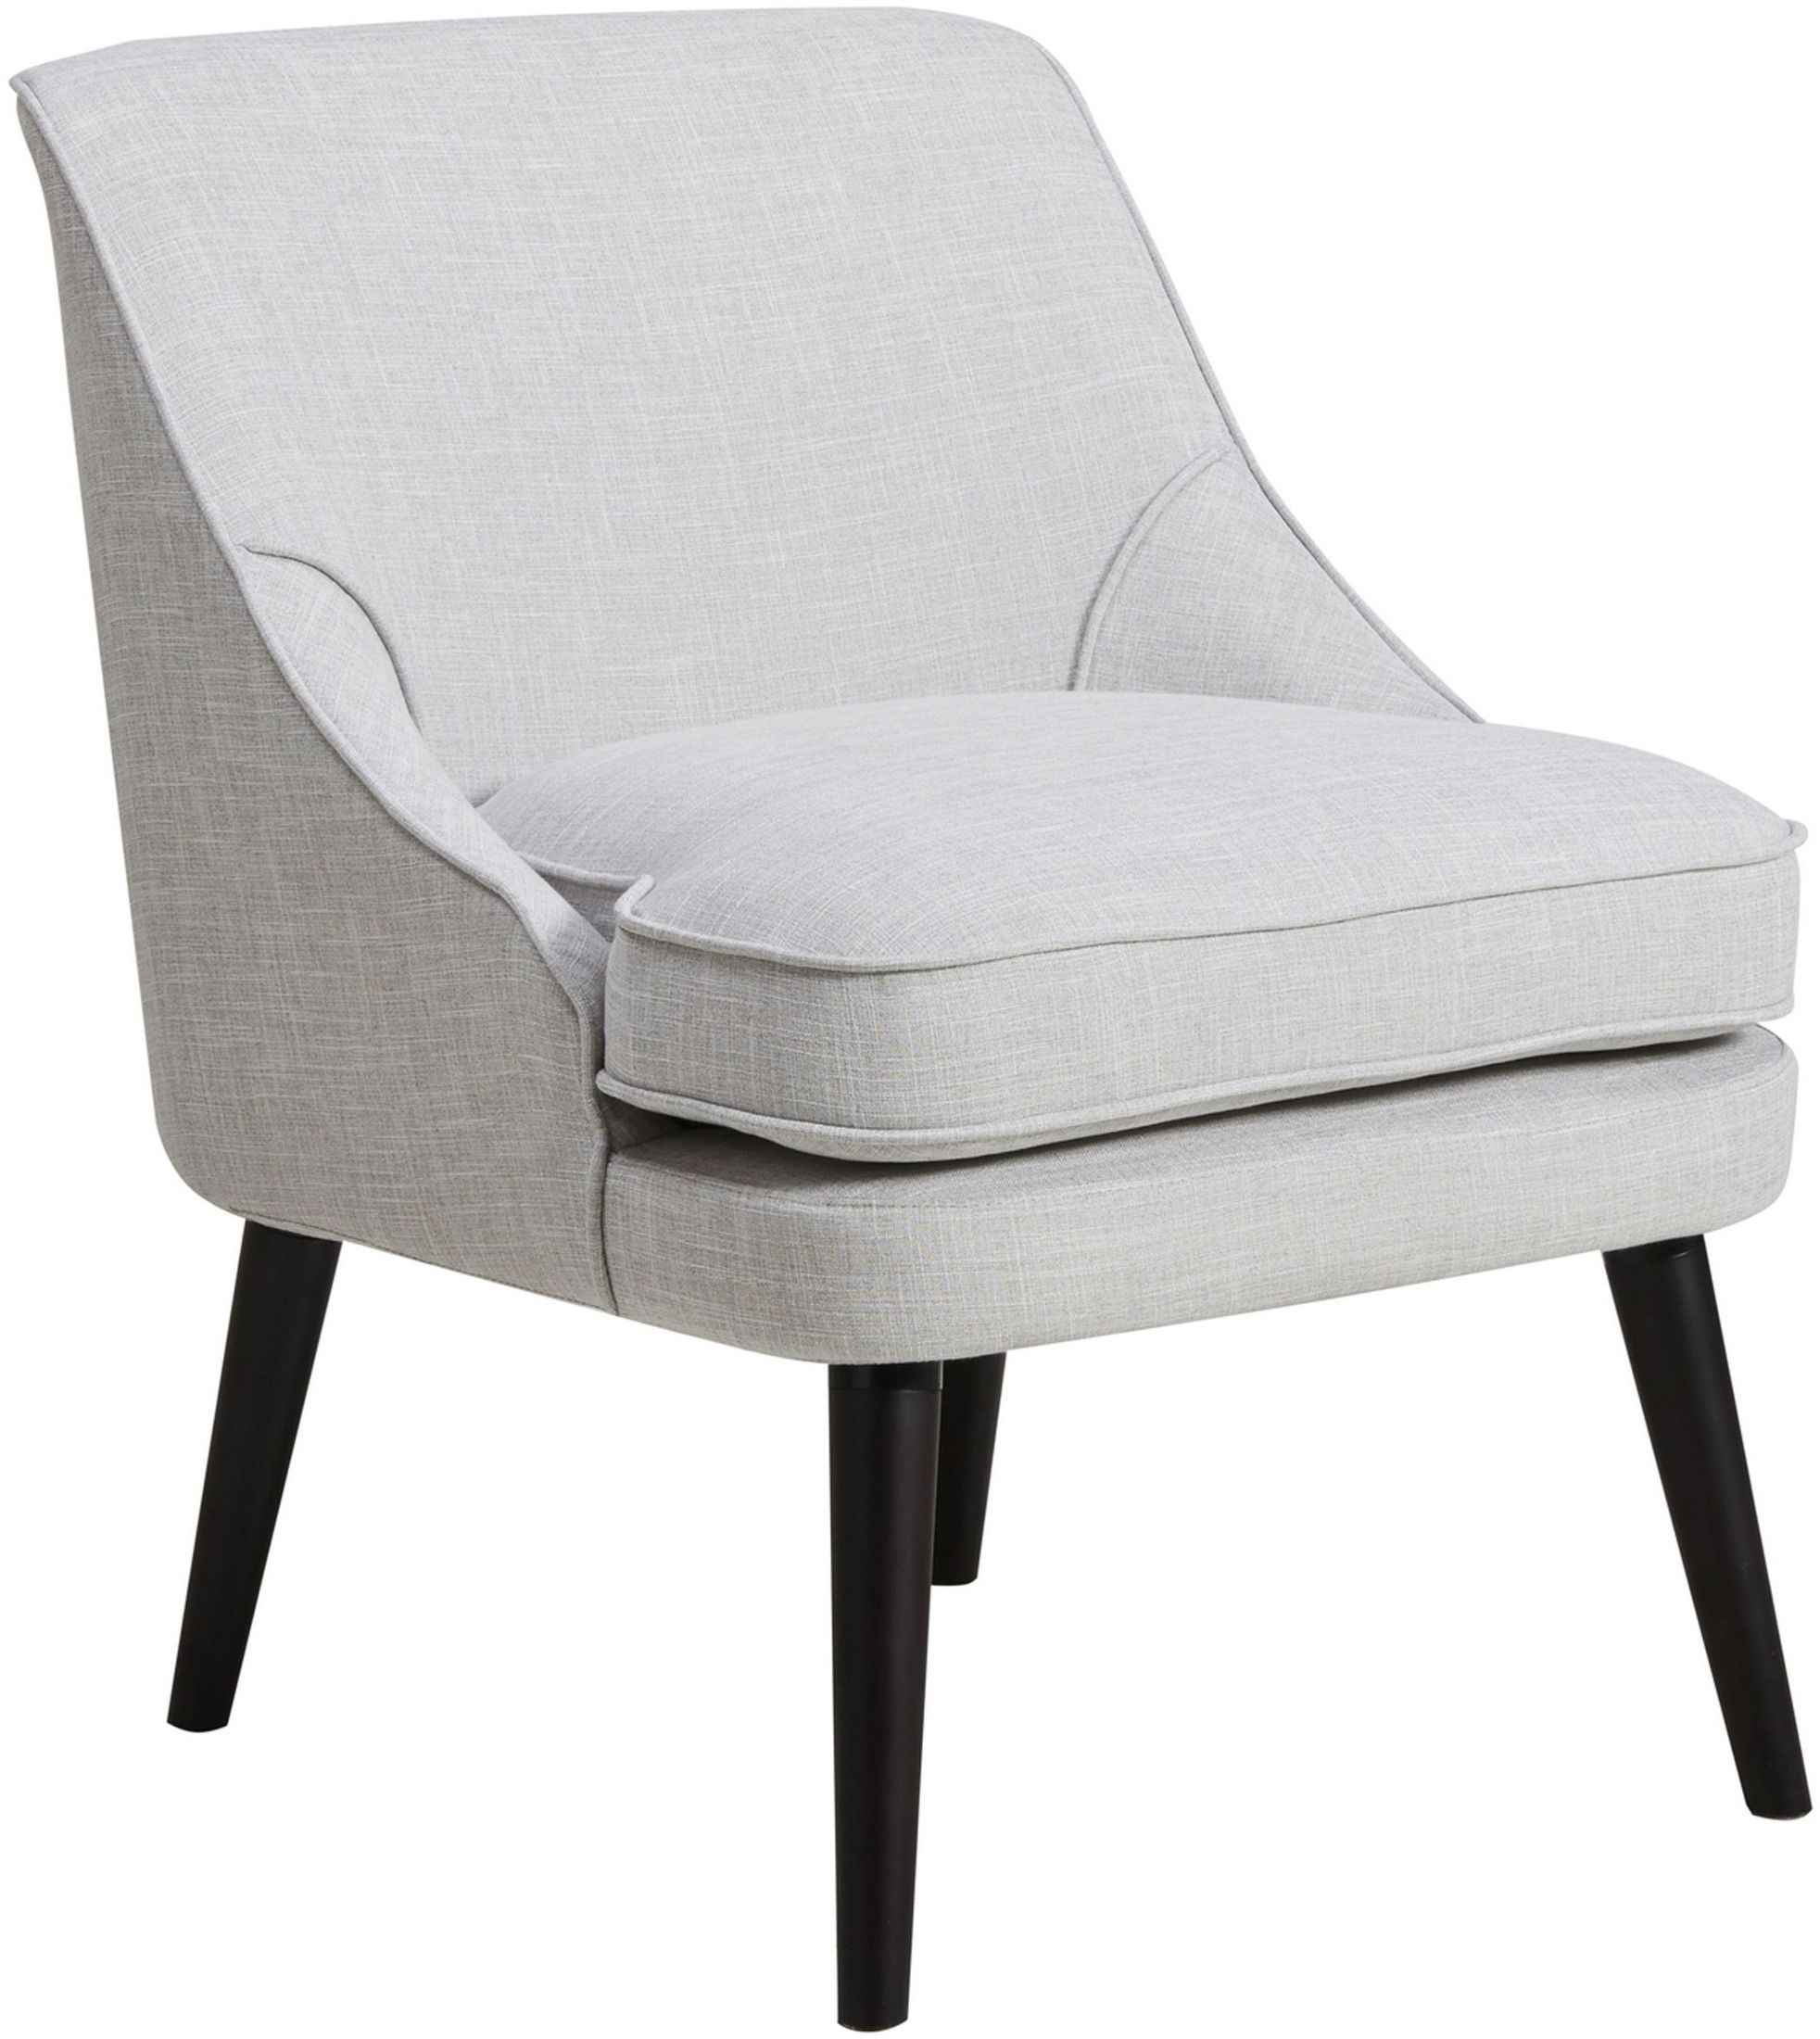 Grey Upholstered Chair Grey Upholstered Accent Chair From Pulaski Coleman Furniture